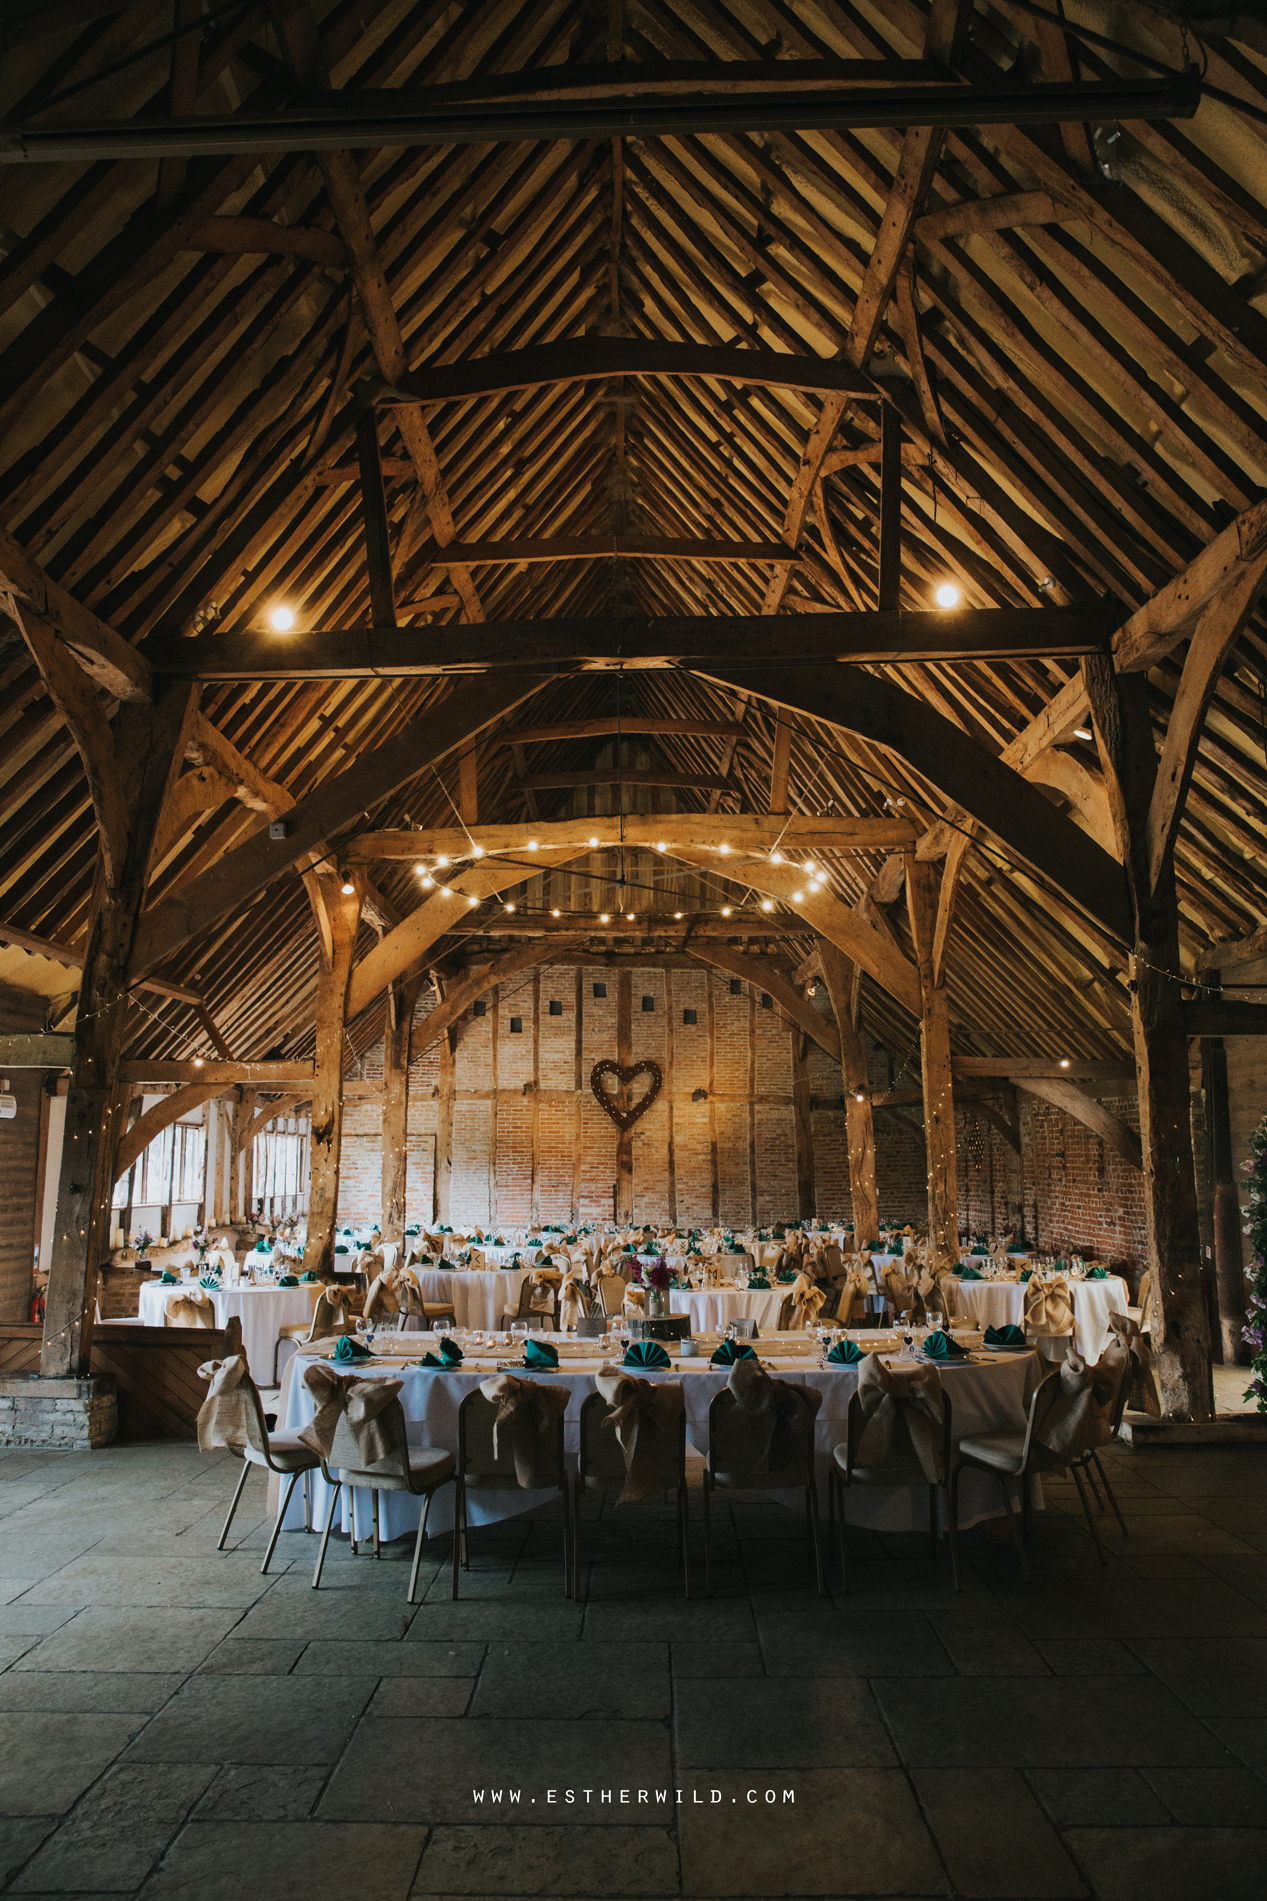 The_Red_Barn_Wedding_Kings_Lynn_Norfolk_IMG_1206.jpg